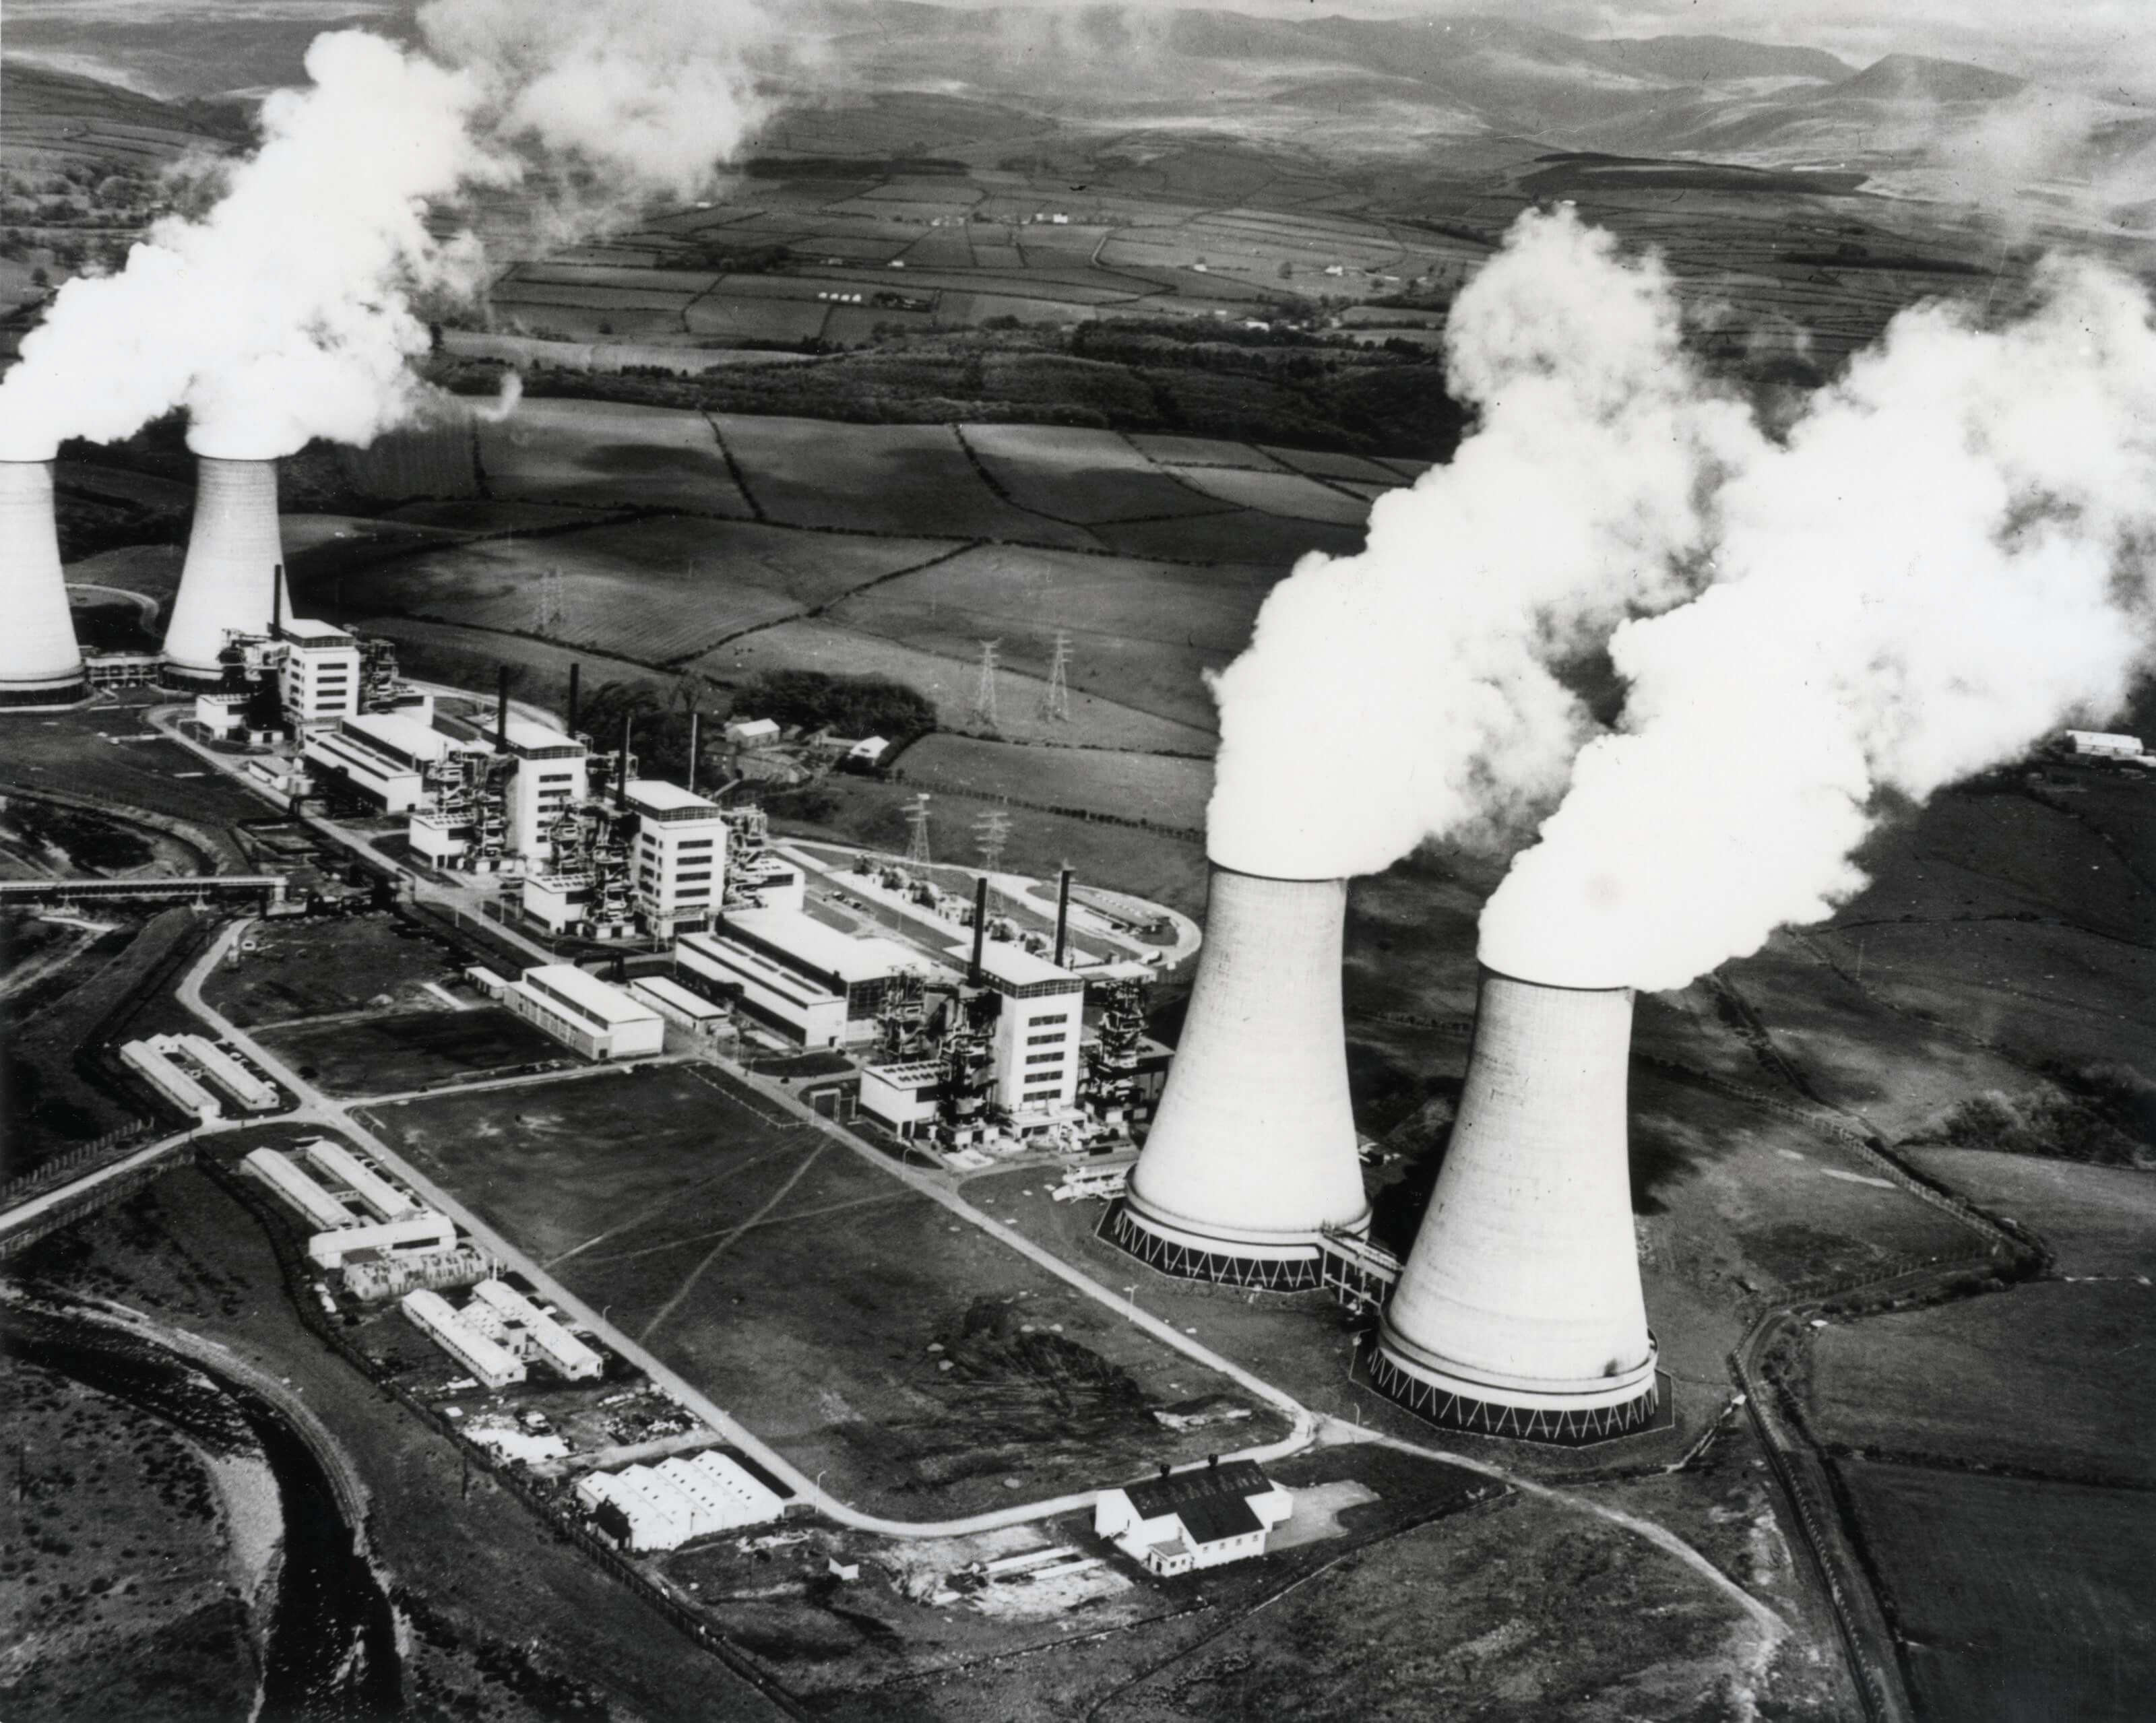 how effective will nuclear power be environmental sciences essay To a degree unique in science and in energy, nuclear power has been linked to geopolitical issues beyond its control for decades matters of safety, waste management, and proliferation are intrinsic to the technology.